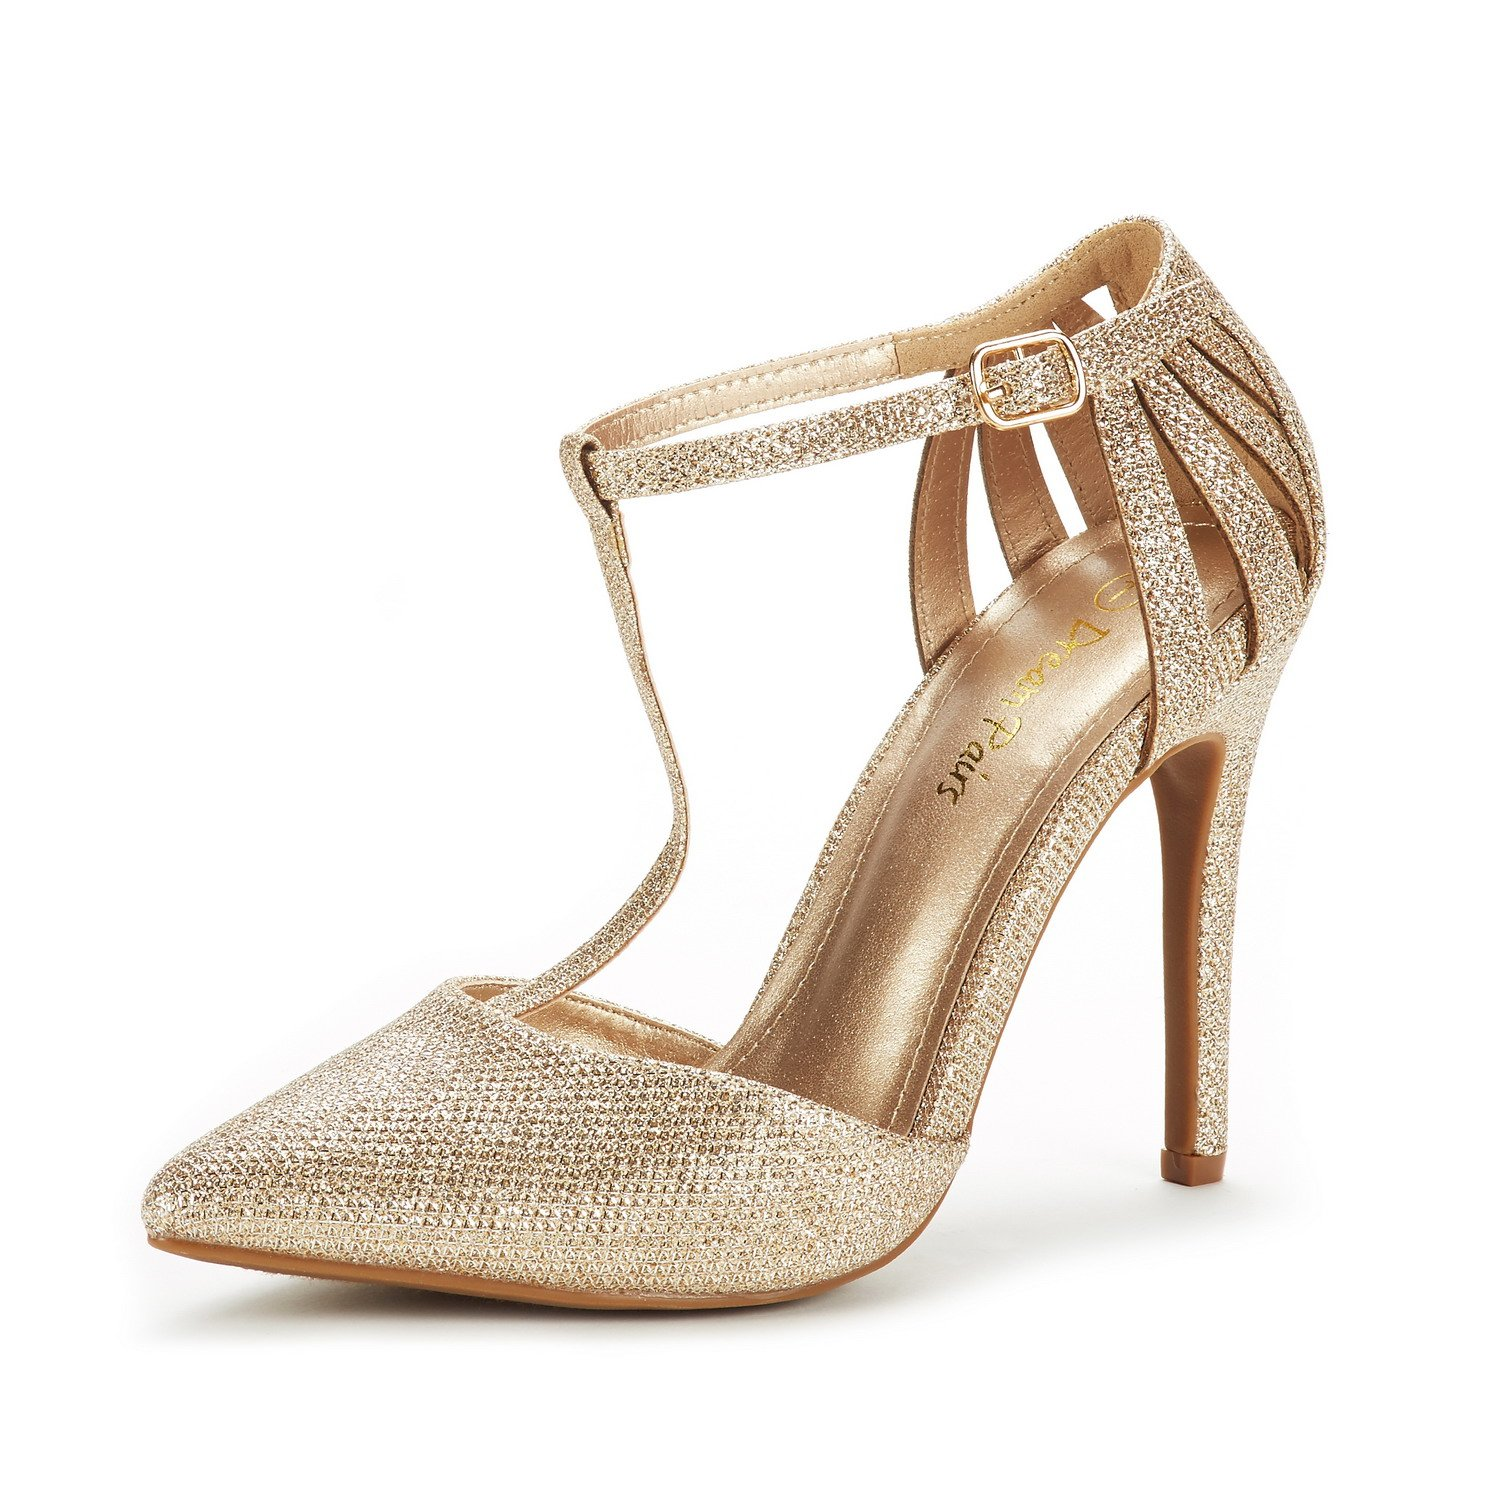 DREAM PAIRS Women's Oppointed-Mary Gold Glitter Fashion Dress High Heel Pointed Toe Wedding Pumps Shoes Size 9 M US